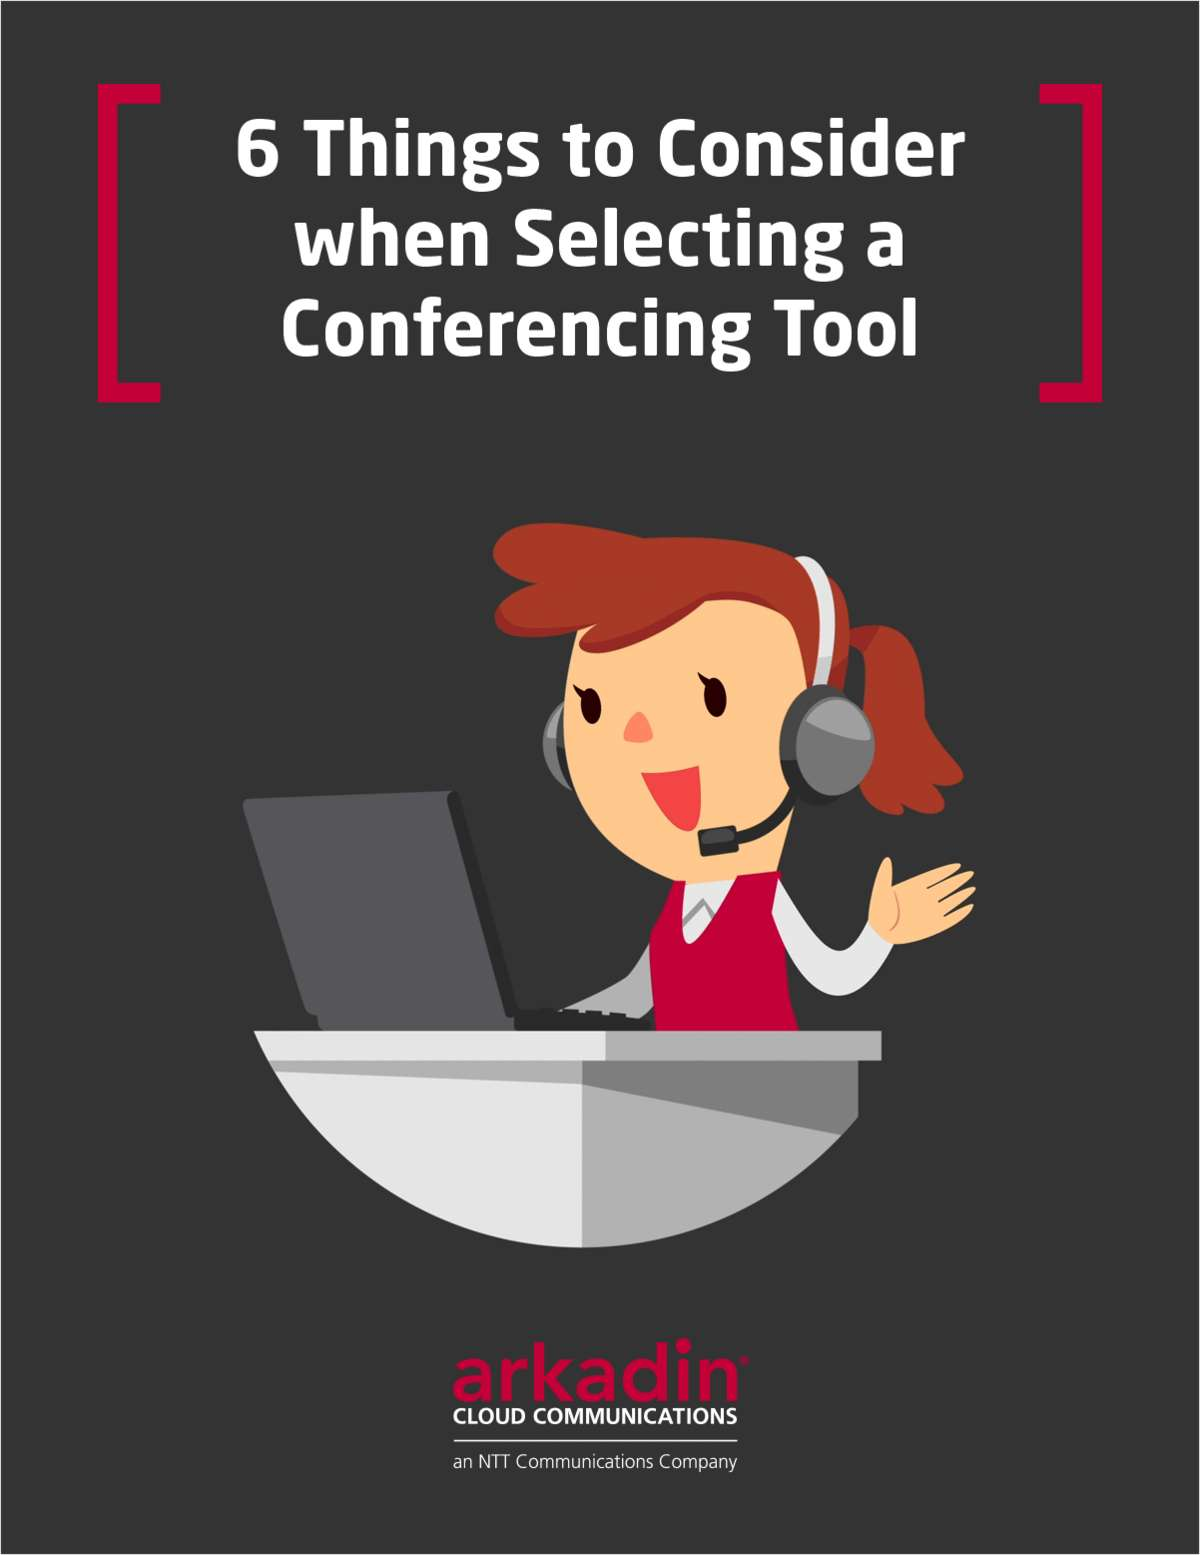 6 Things to Consider when Selecting a Conferencing Tool